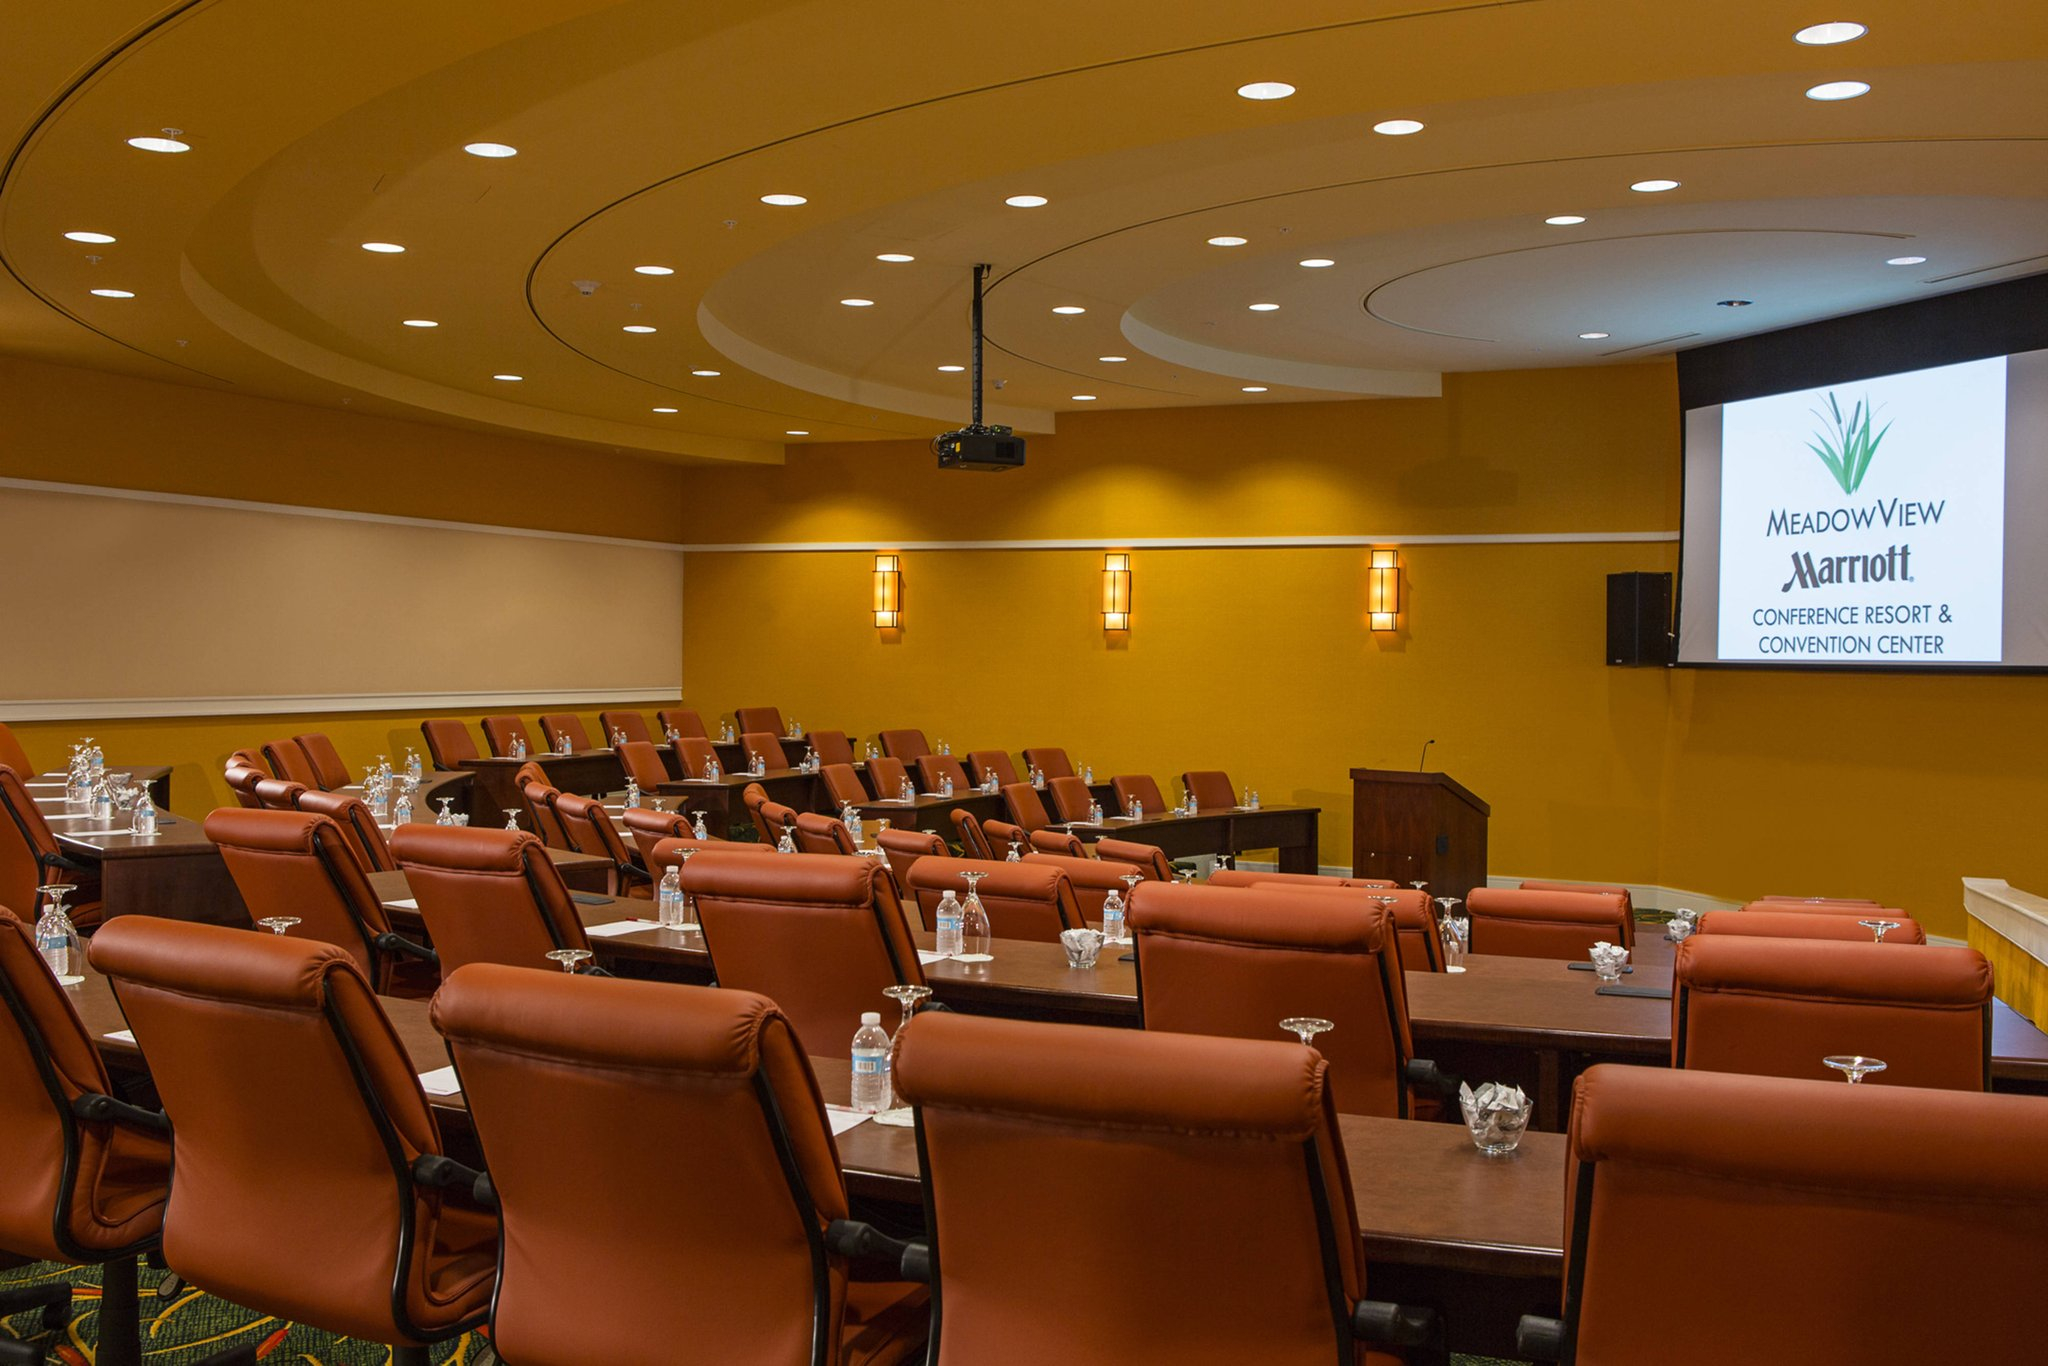 Meetings And Events At Meadowview Conference Resort Inside Meadowview Convention Center Events Calendar